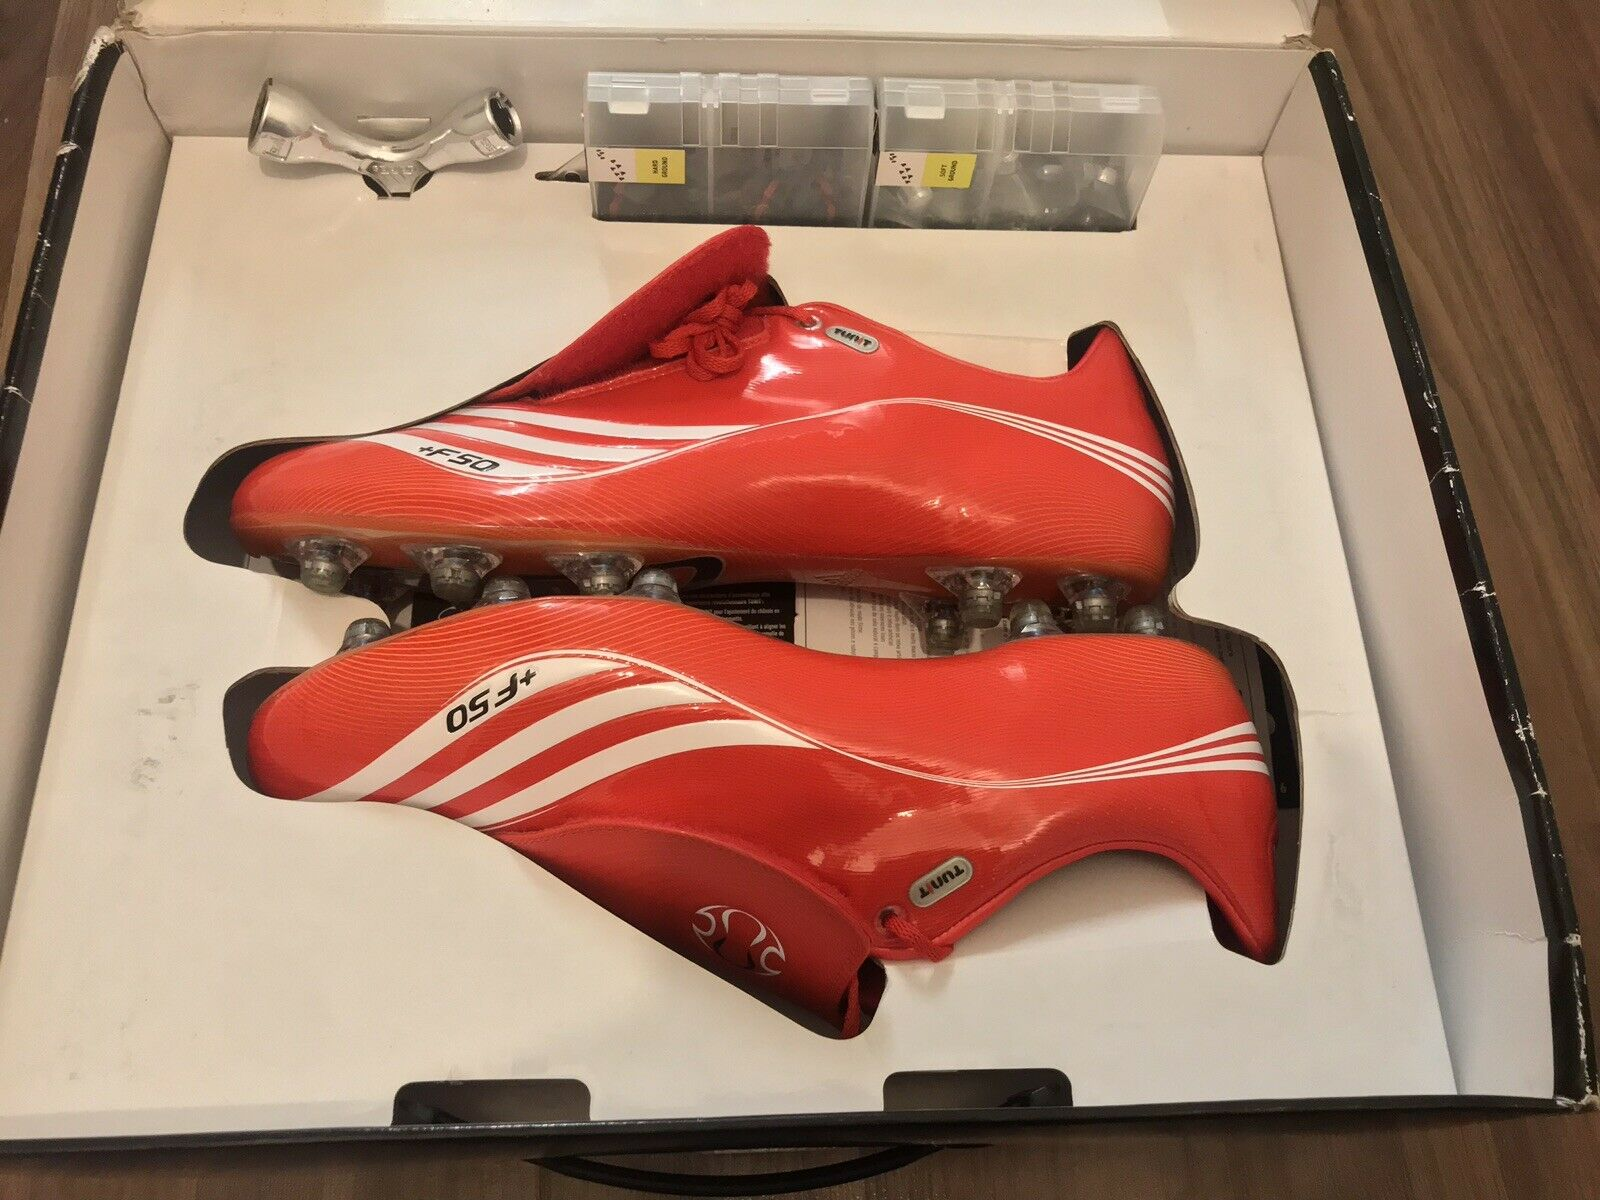 ADIDAS +F50 TUNIT, Football Boot For All Season, ALL CONDITION. (BRAND NEW)